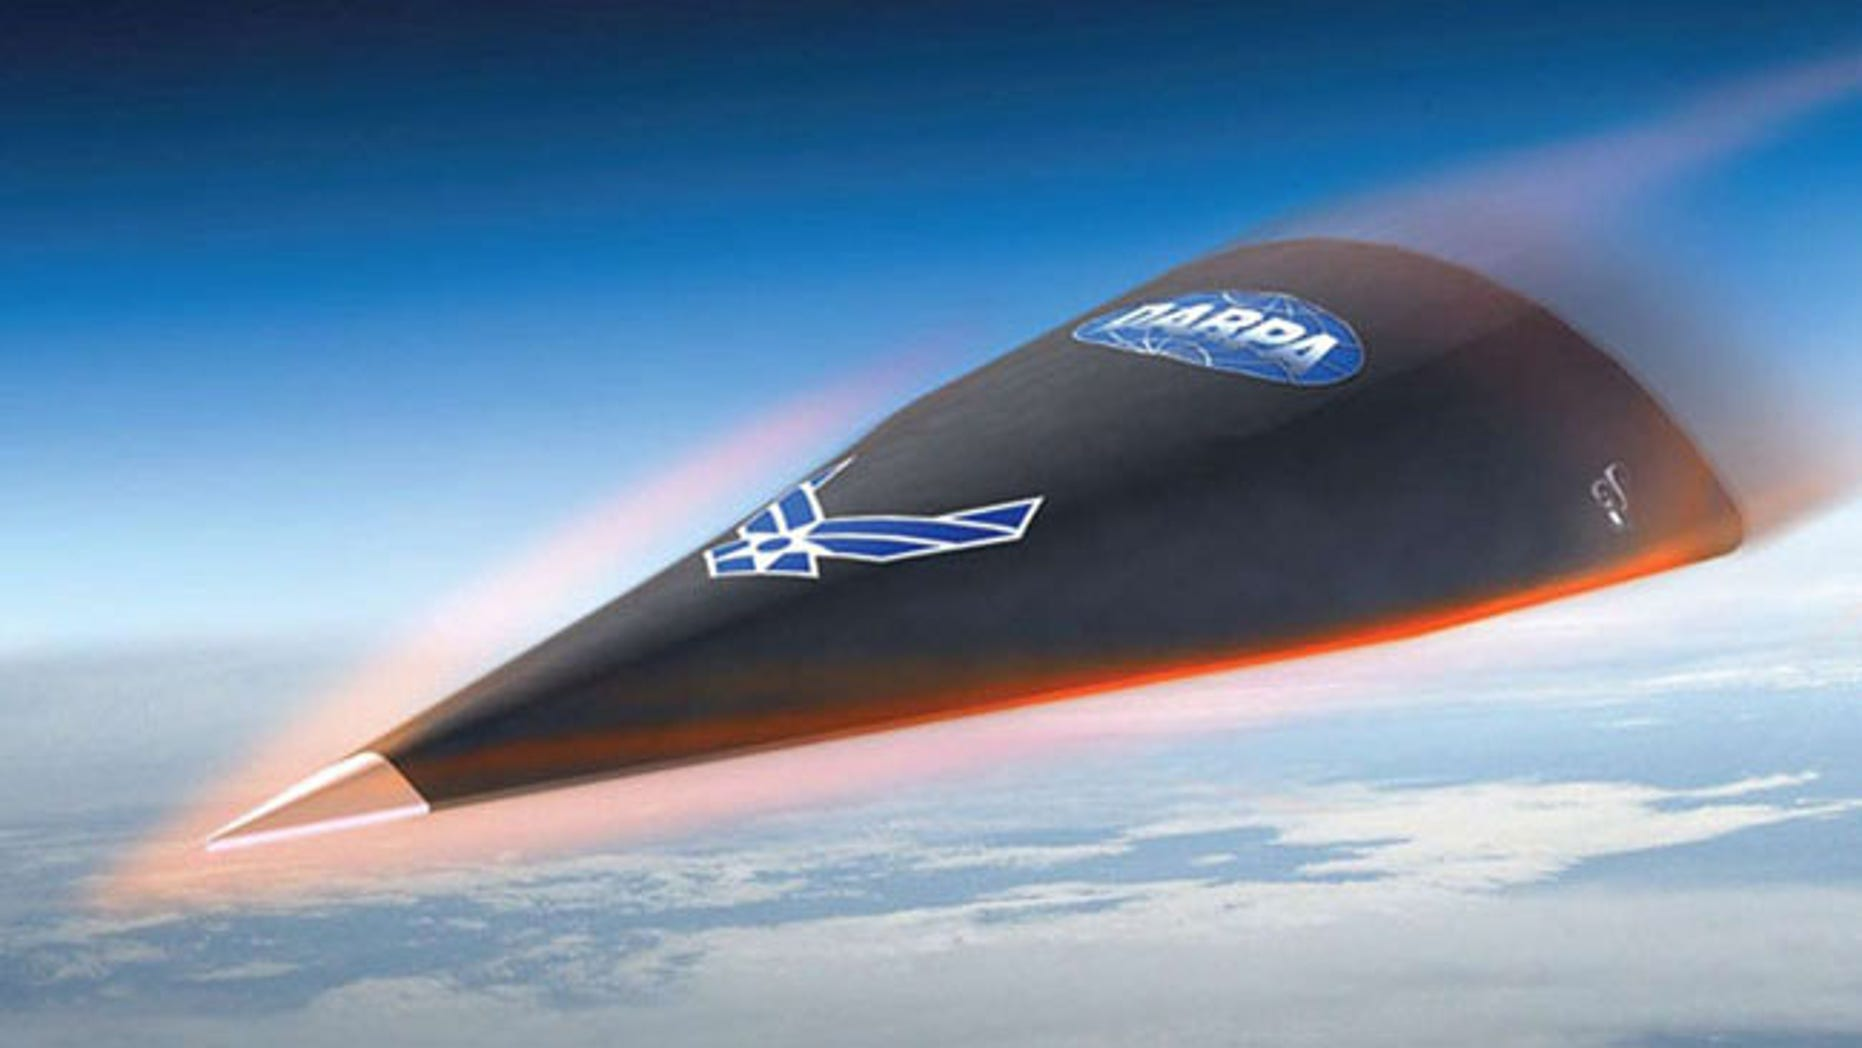 The DARPA Falcon Hypersonic Technology Vehicle (HTV)-2, one of several hypersonic test projects underway by various U.S. military agencies.